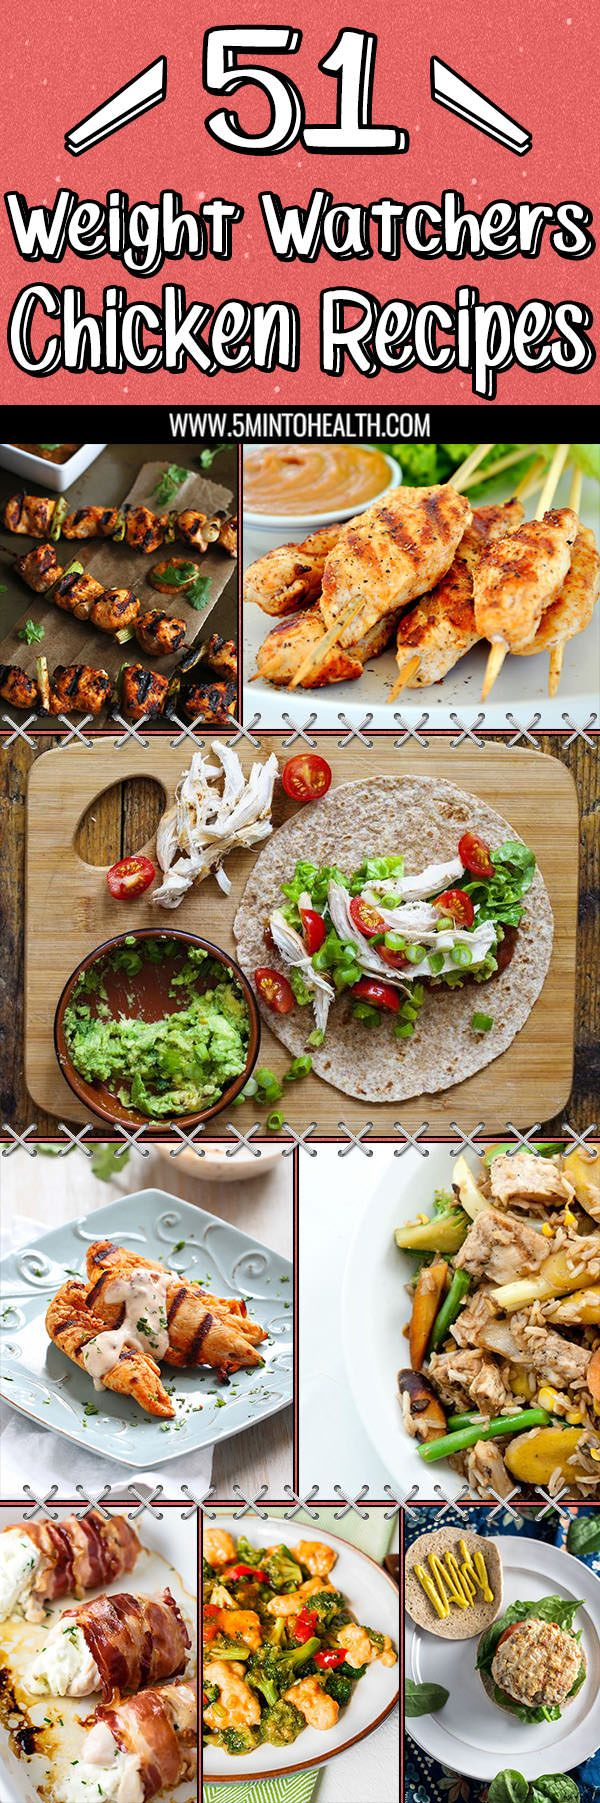 51 Weight Watchers Chicken Recipes via 5MINTOHEALTH.COM